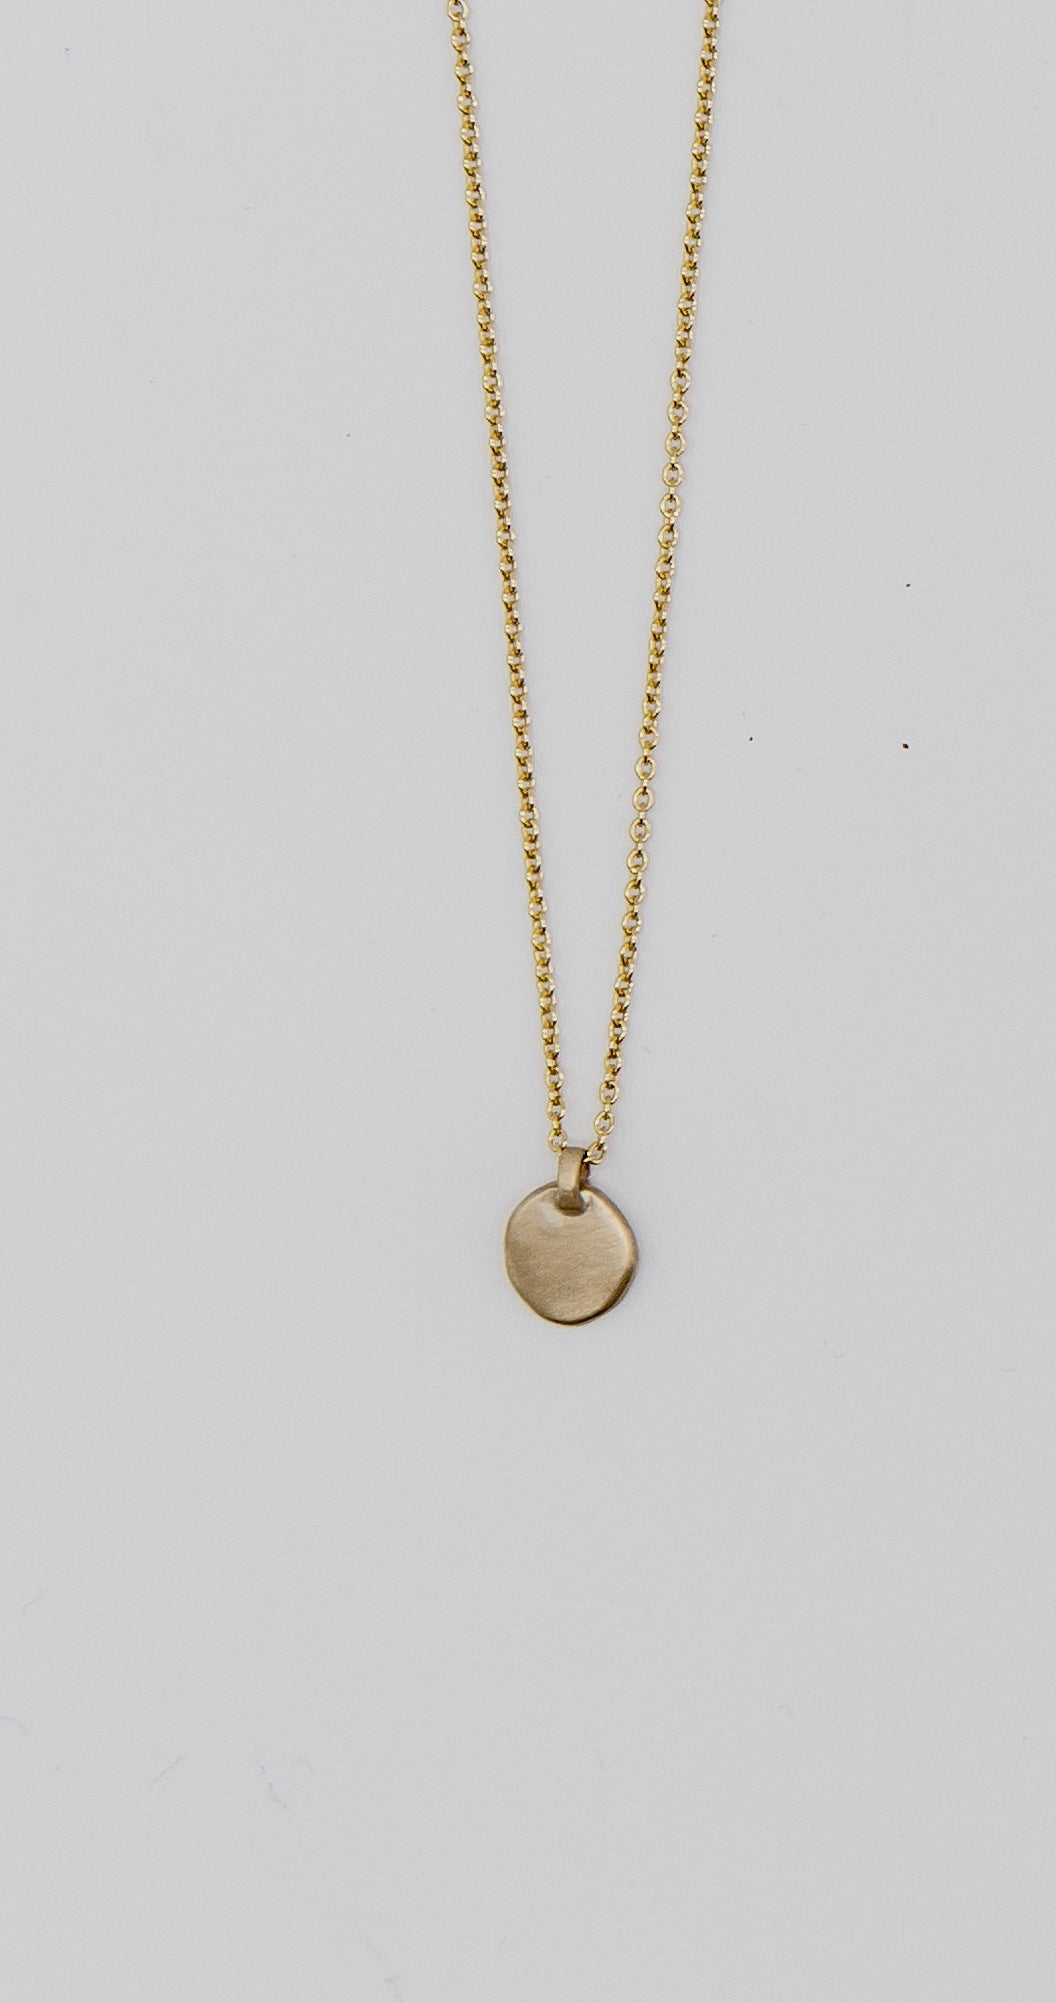 Celebration  Necklace 9K Gold - 7mm